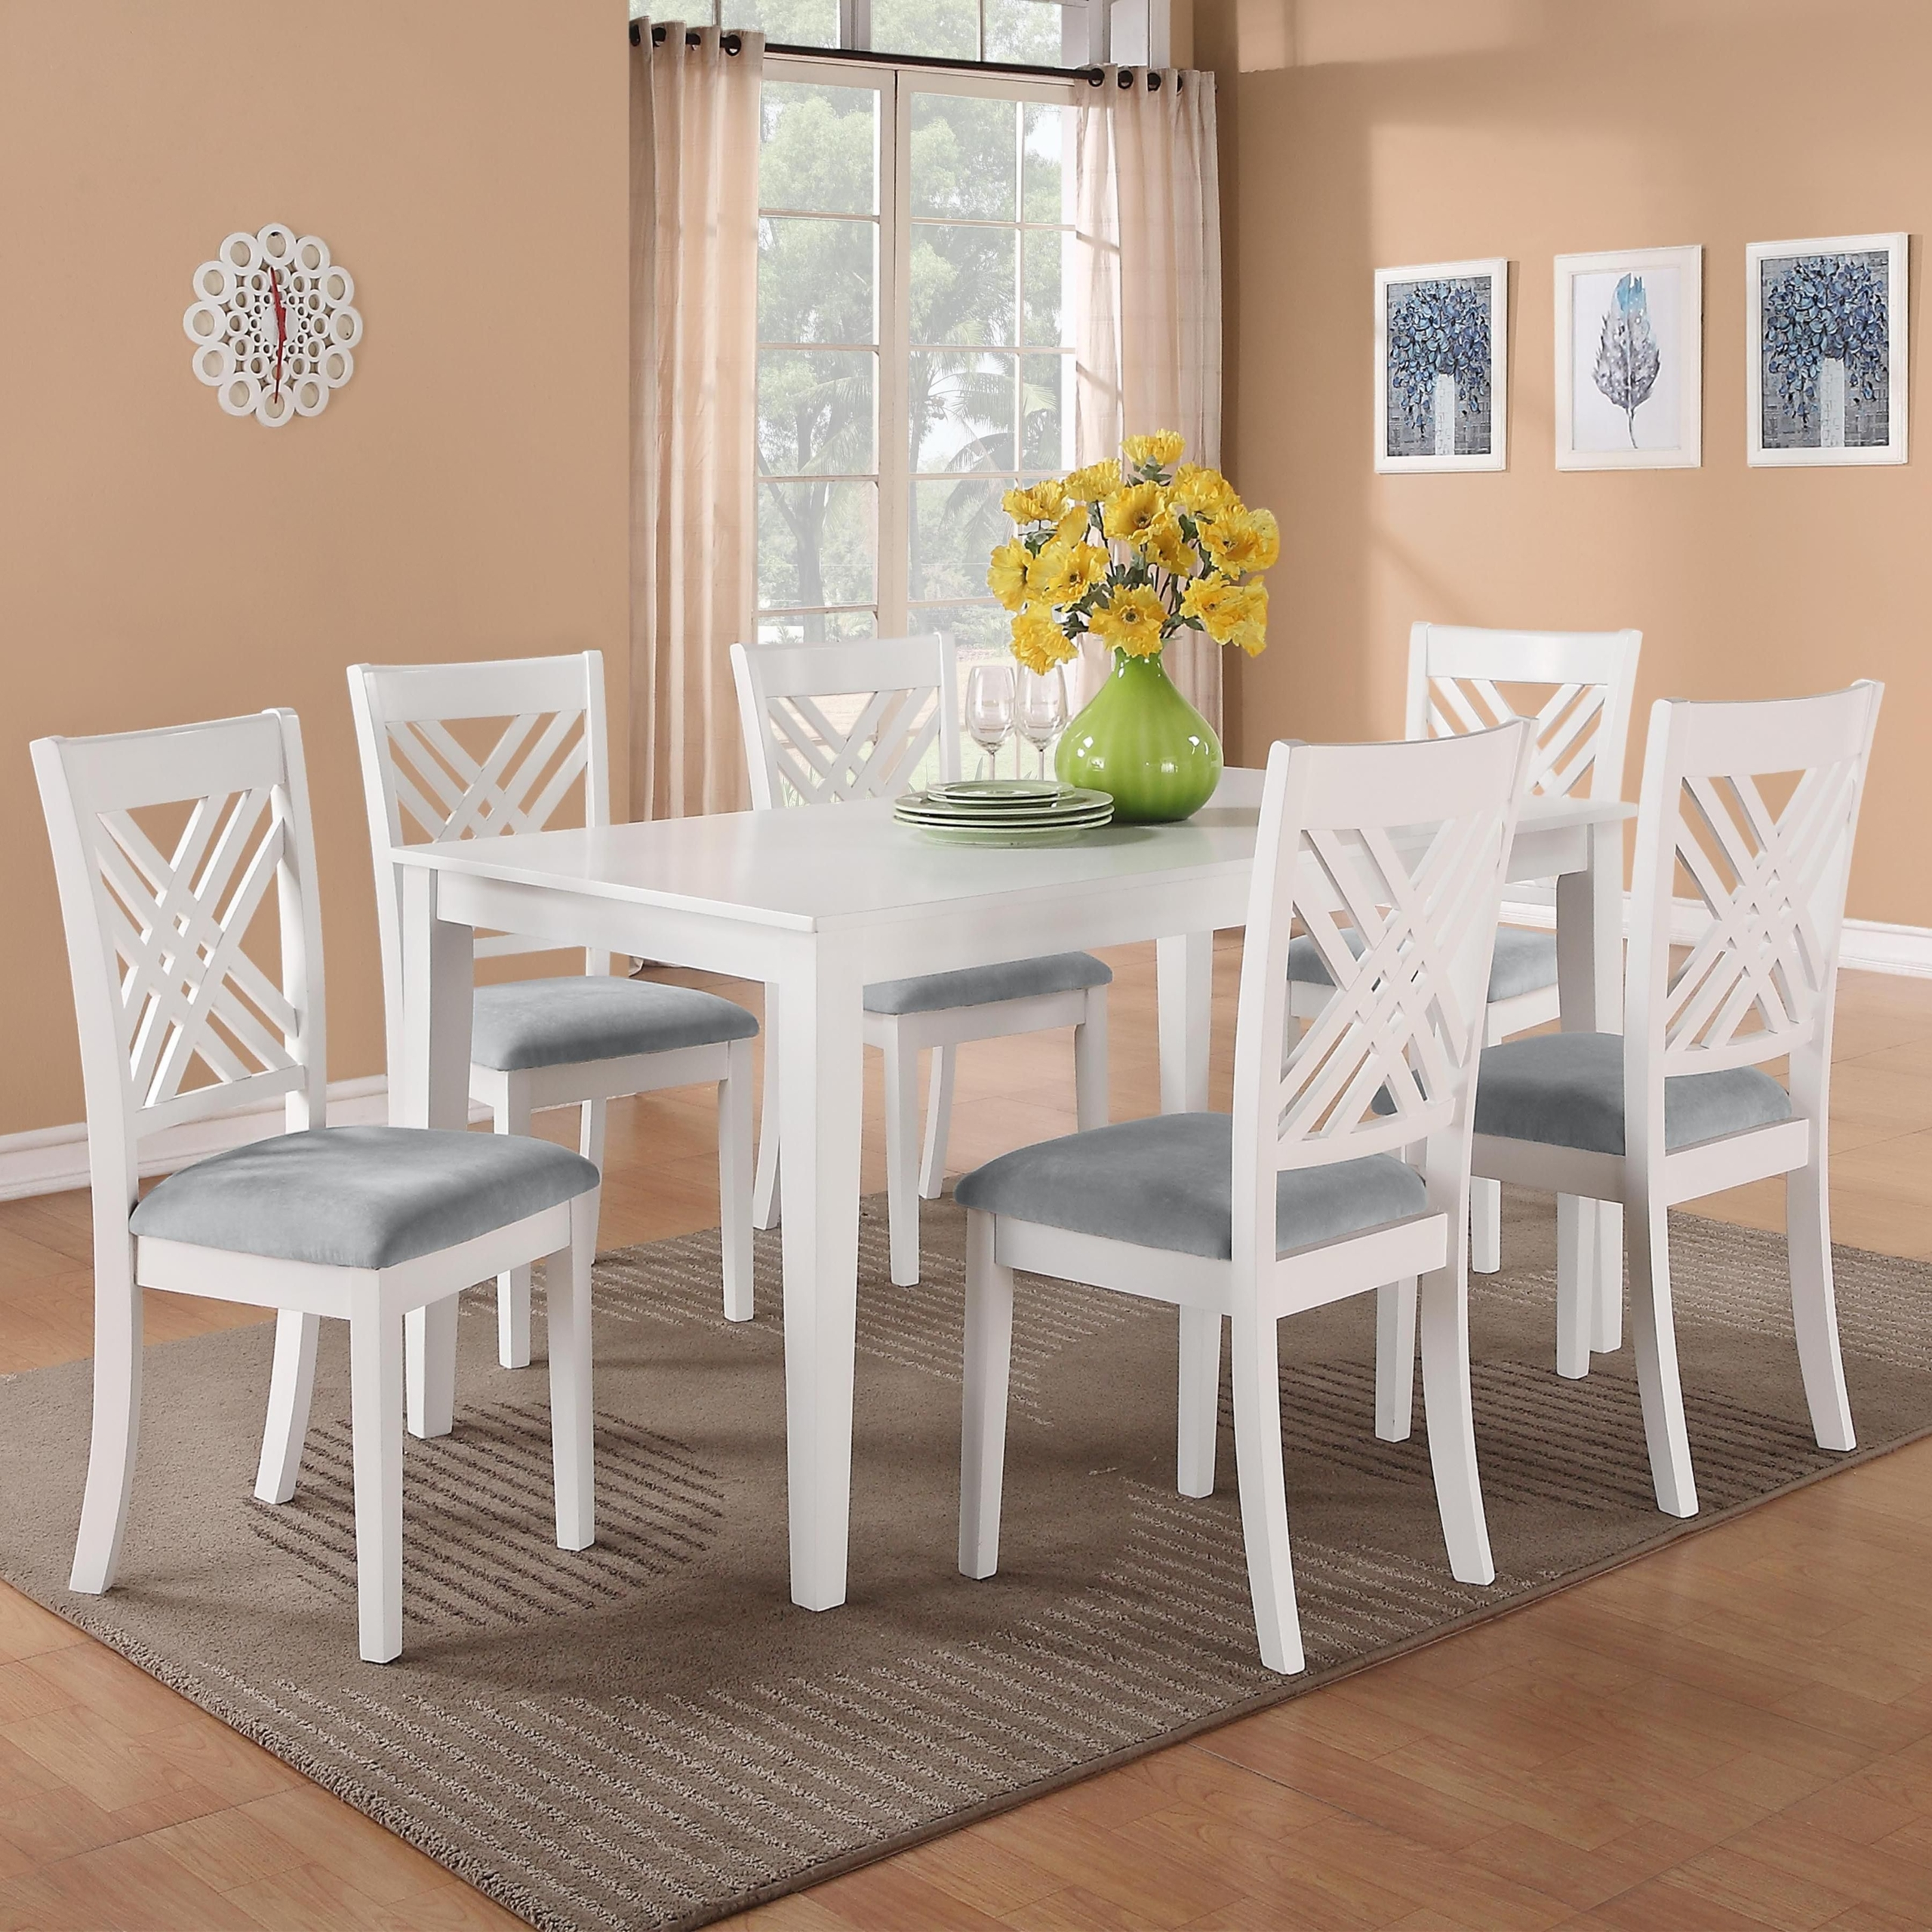 White Dining Table Set You Ll Love In, White Wood Dining Room Sets